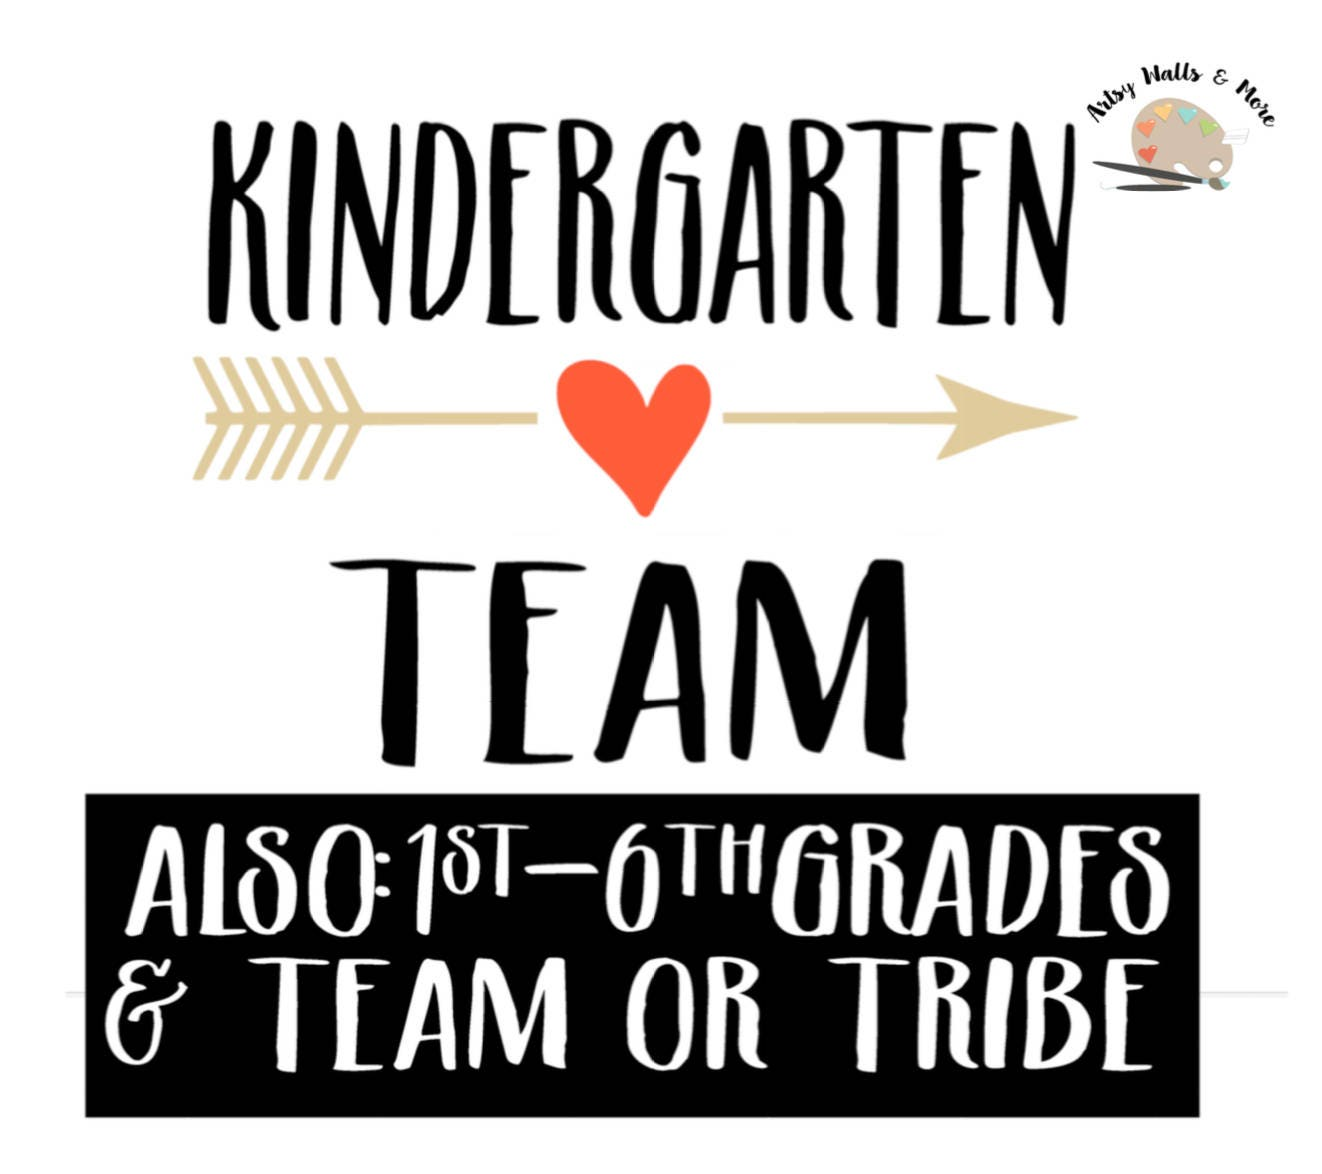 Kindergarten team svg Kindergarten tribe svg First grade 2nd